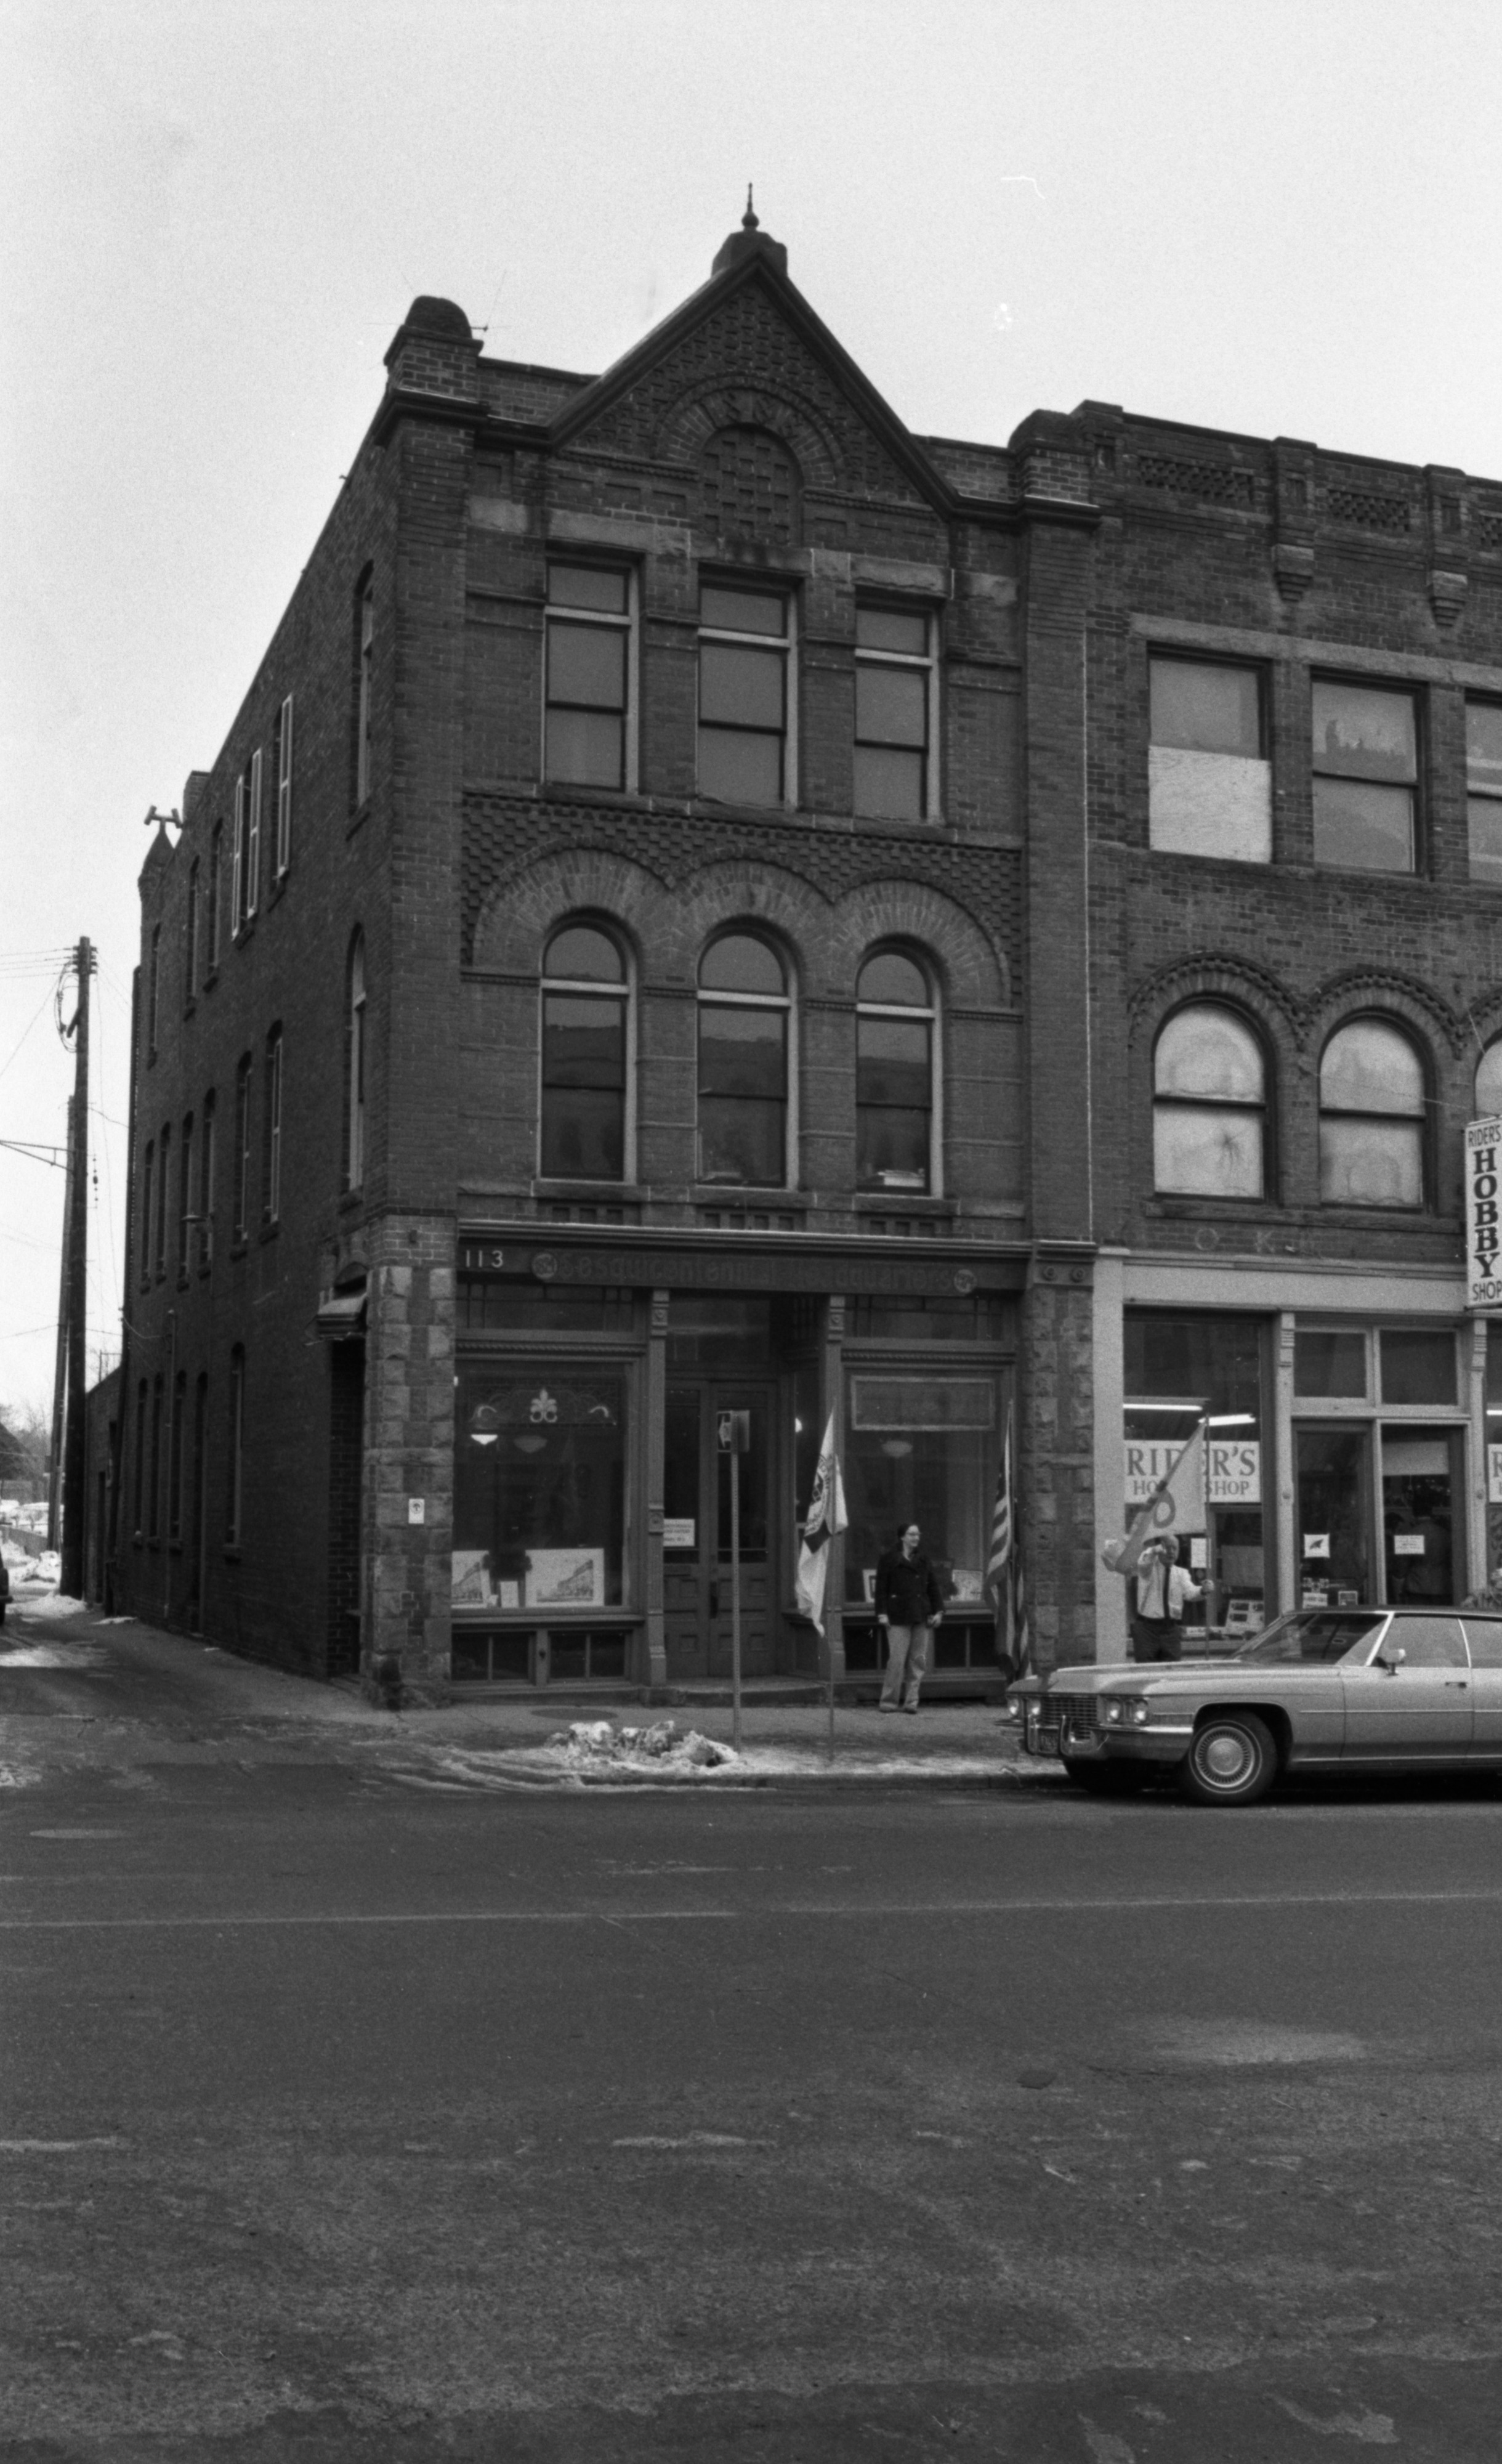 The Haarer Building on Liberty, home of Ann Arbor's Sesquicentennial Office, December 1974 image